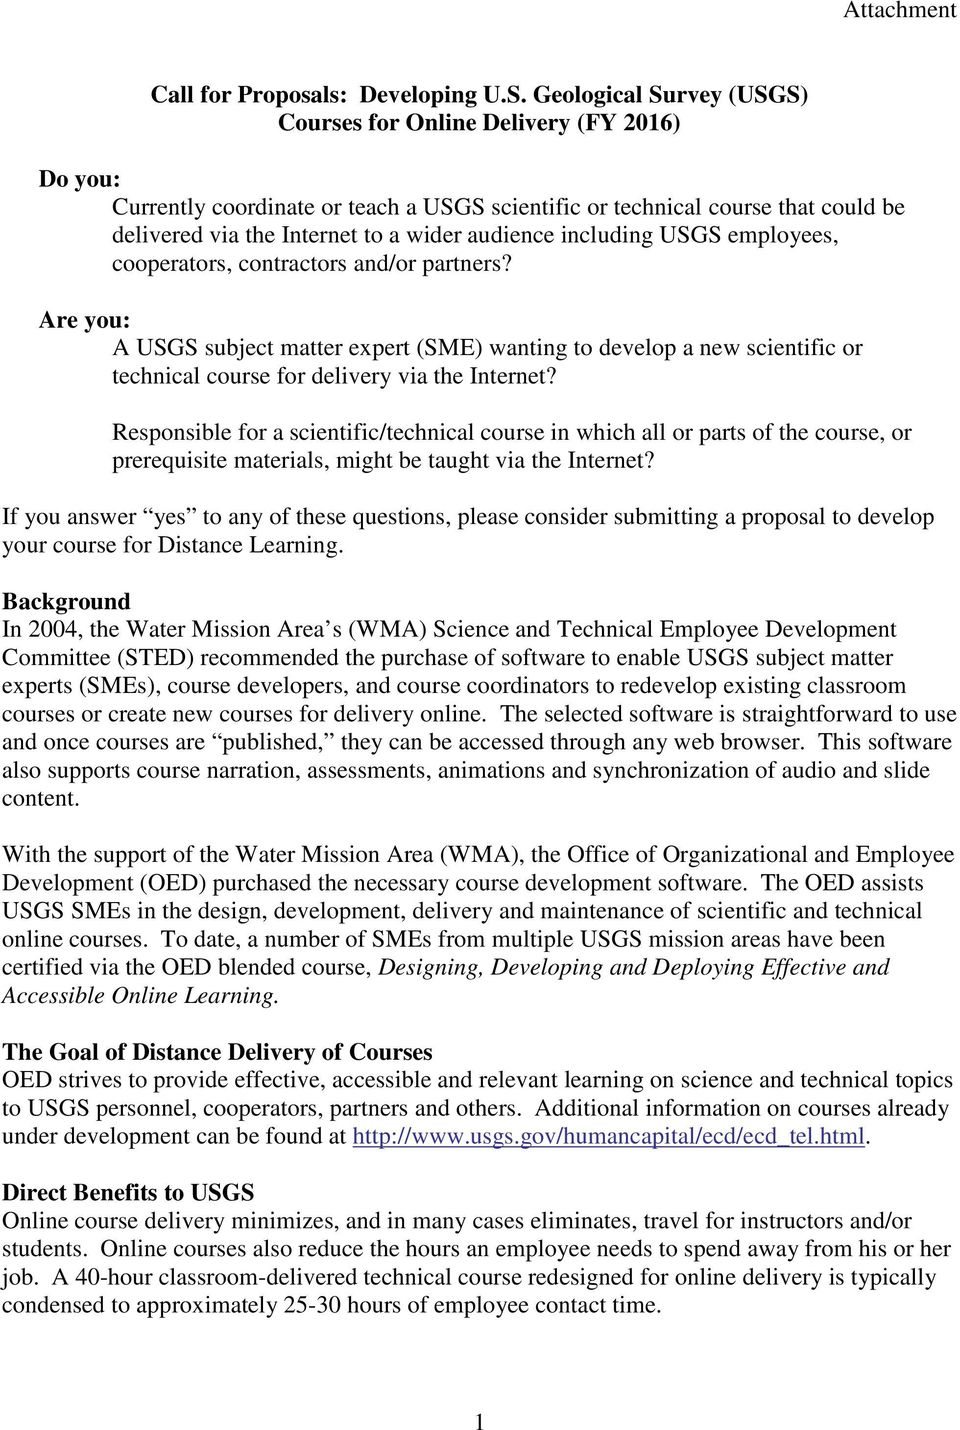 including USGS employees, cooperators, contractors and/or partners? Are you: A USGS subject matter expert (SME) wanting to develop a new scientific or technical course for delivery via the Internet?